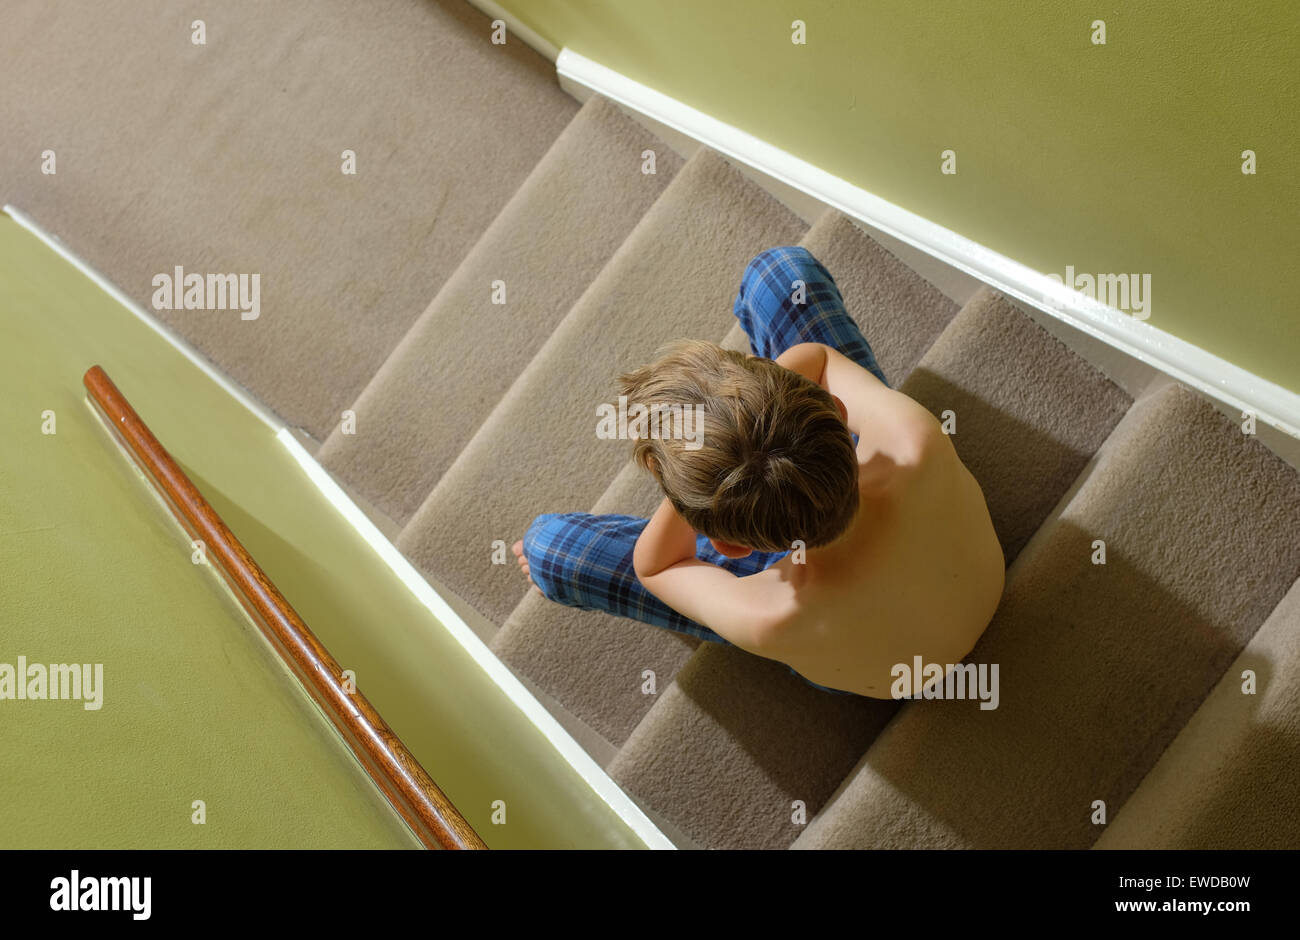 A child sitting on the stairs with his head in his hands looking upset - Stock Image